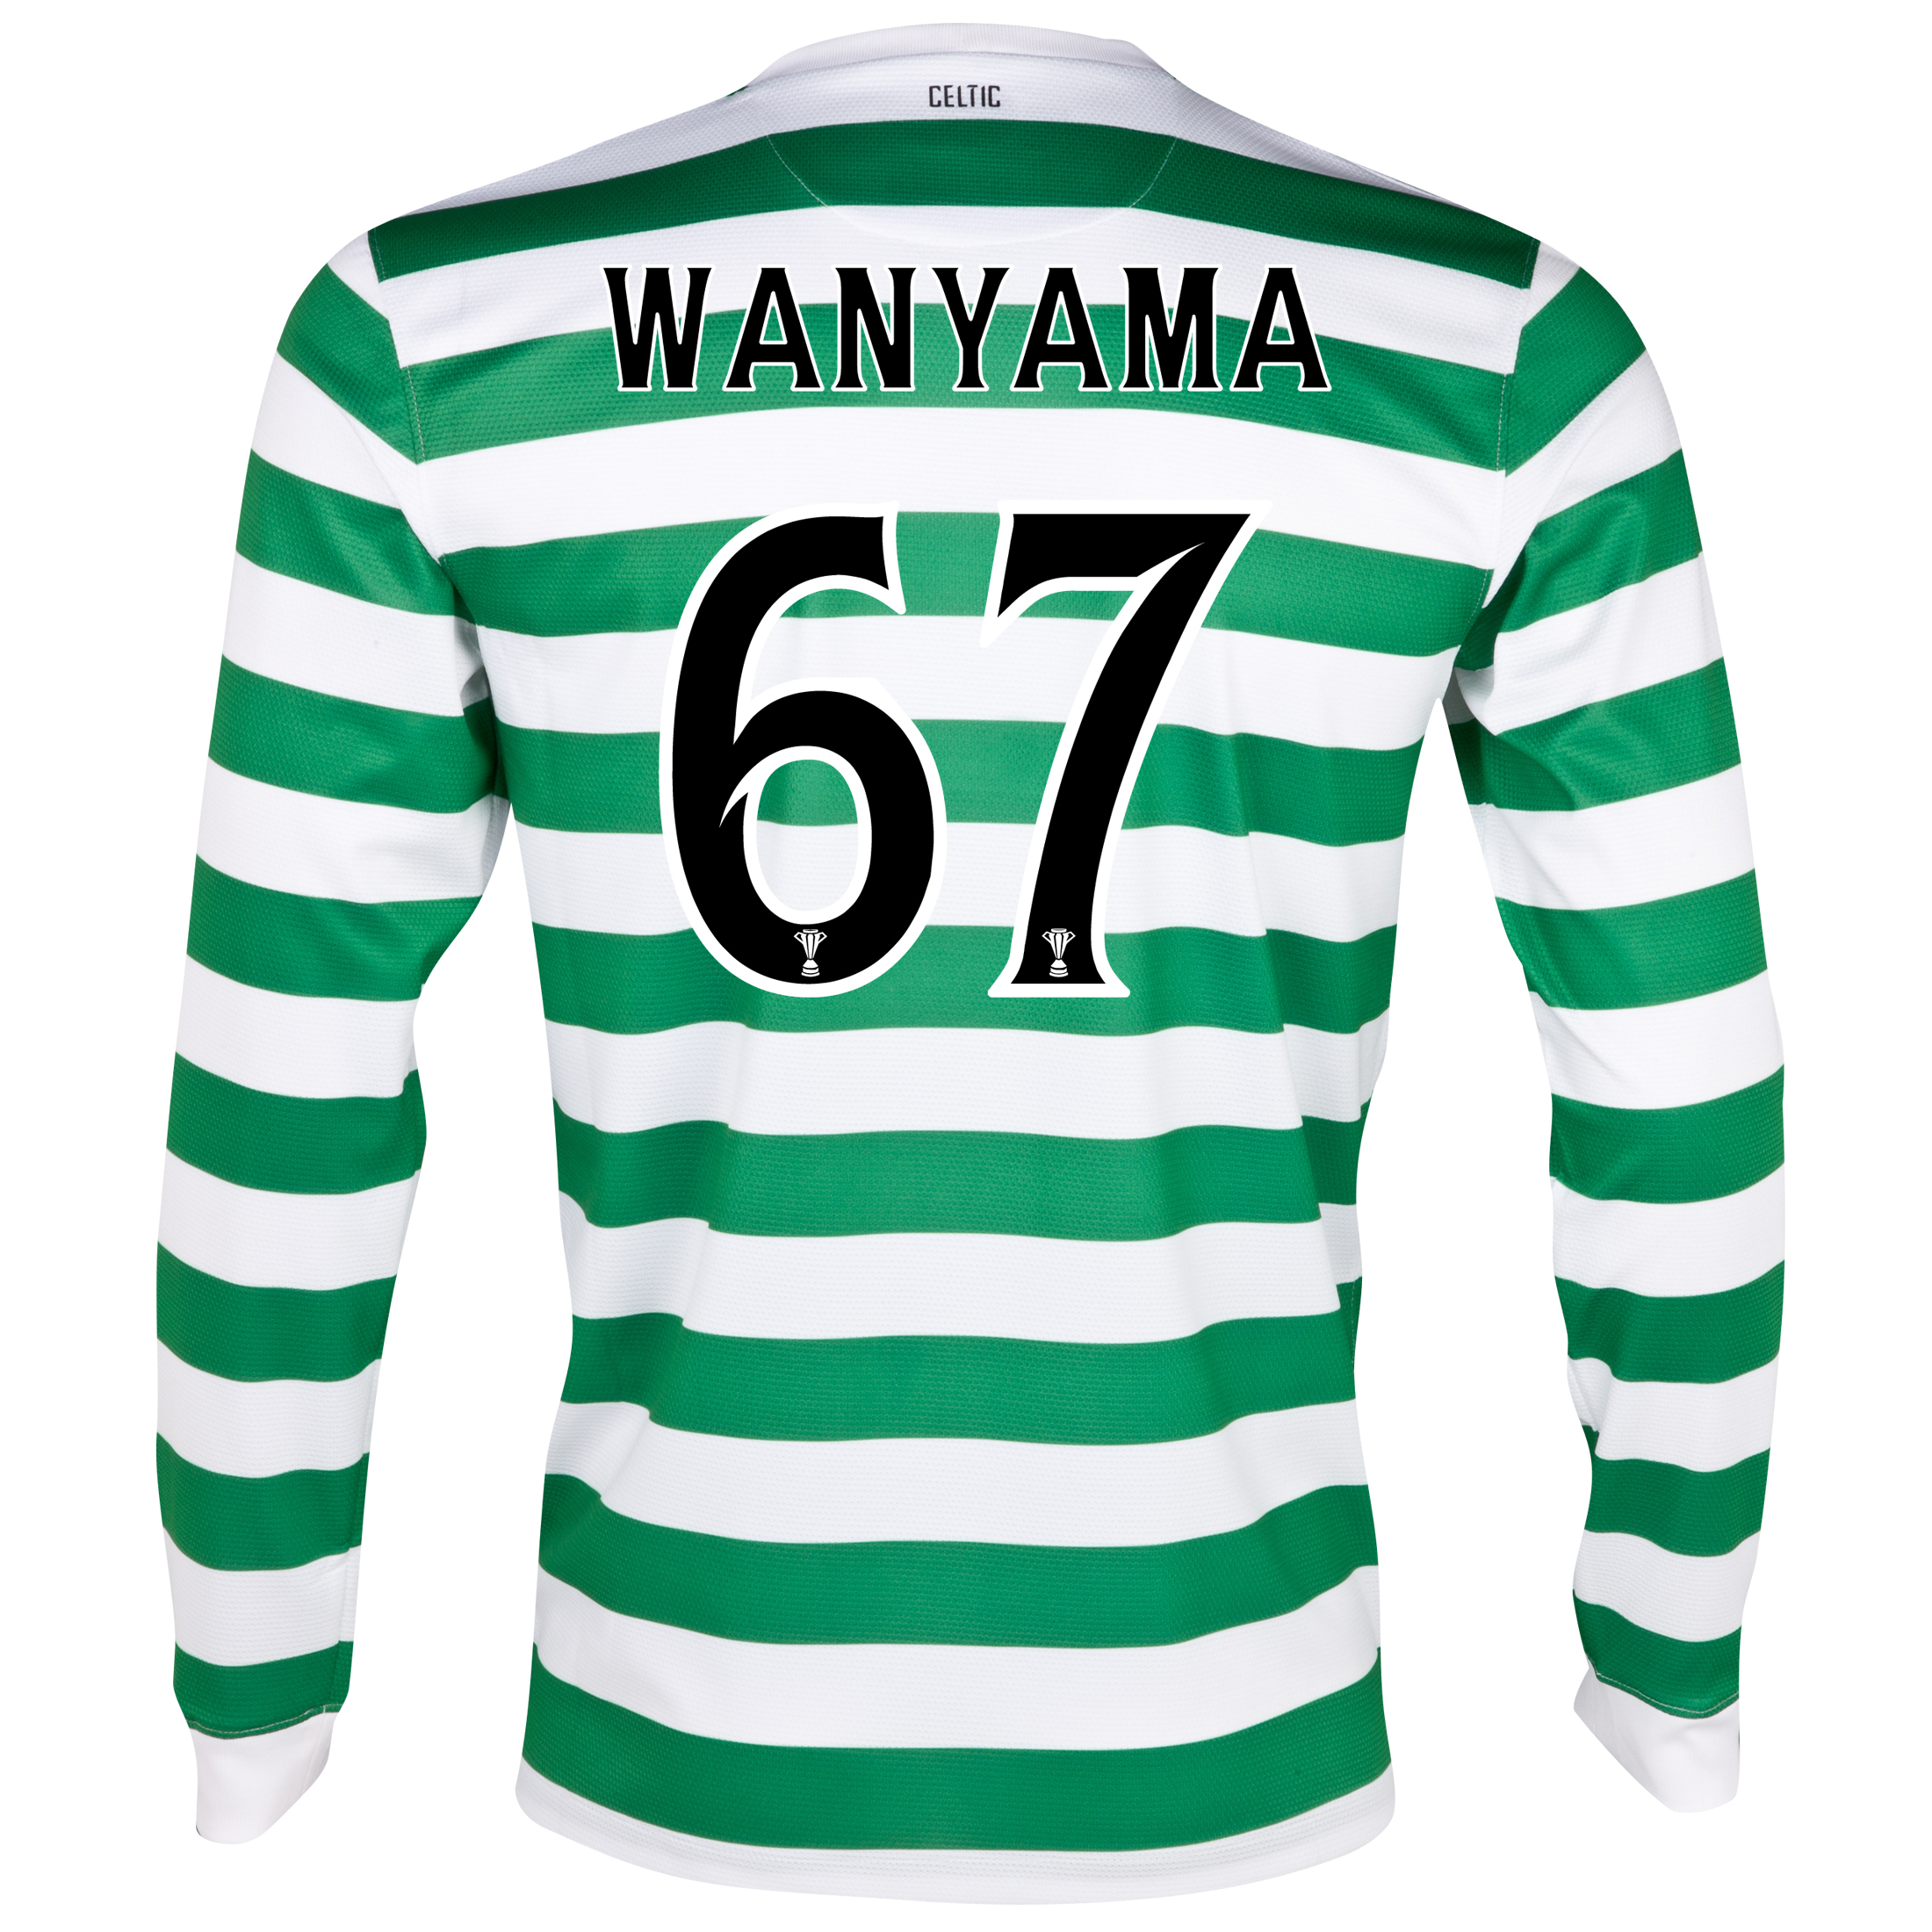 Celtic Home Shirt 2012/13 - Long Sleeved - No Sponsor with Wanyama 67 printing